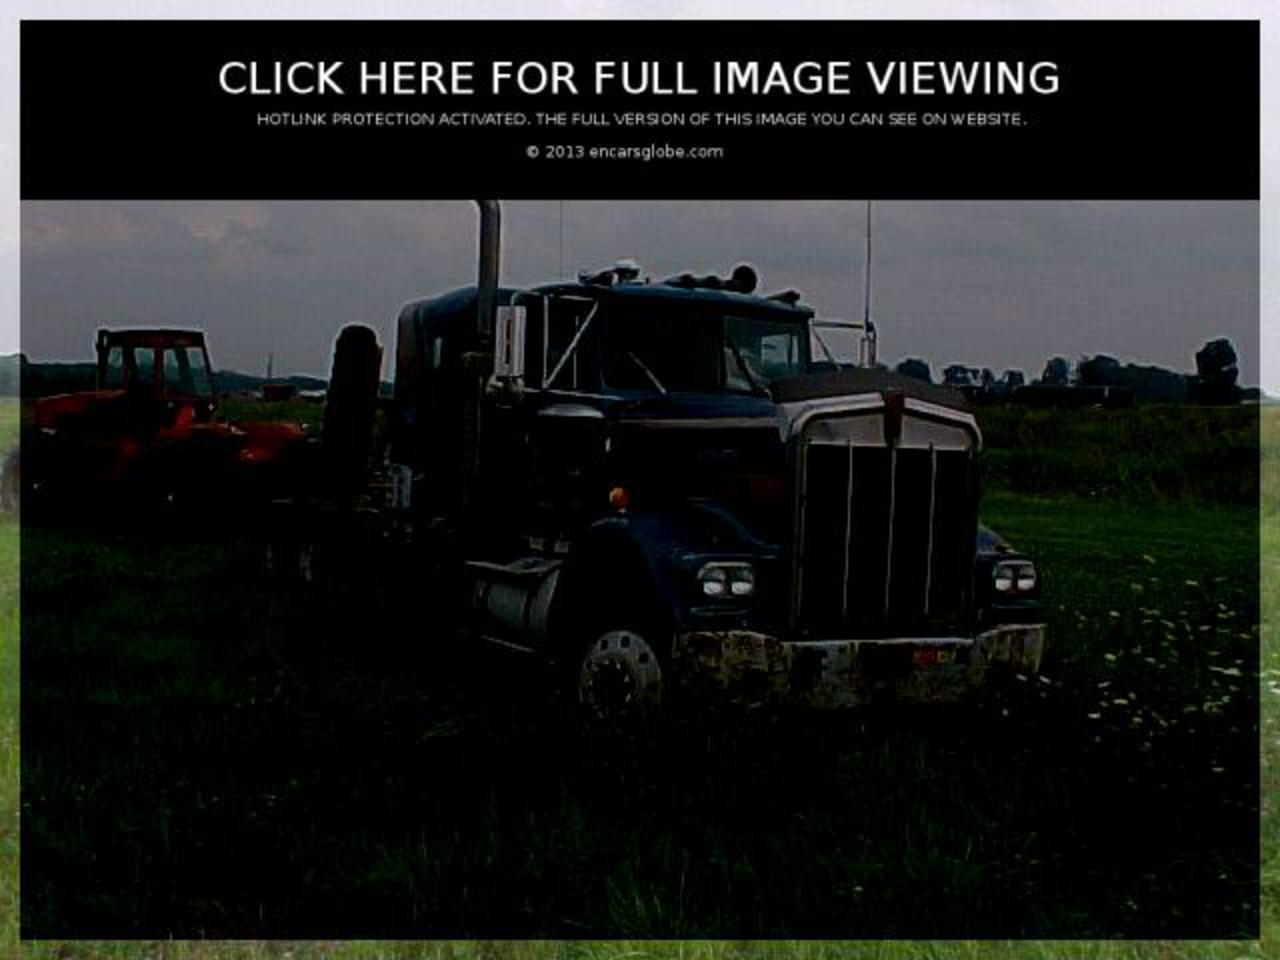 Kenworth W900A Photo Gallery: Photo #10 out of 11, Image Size ...